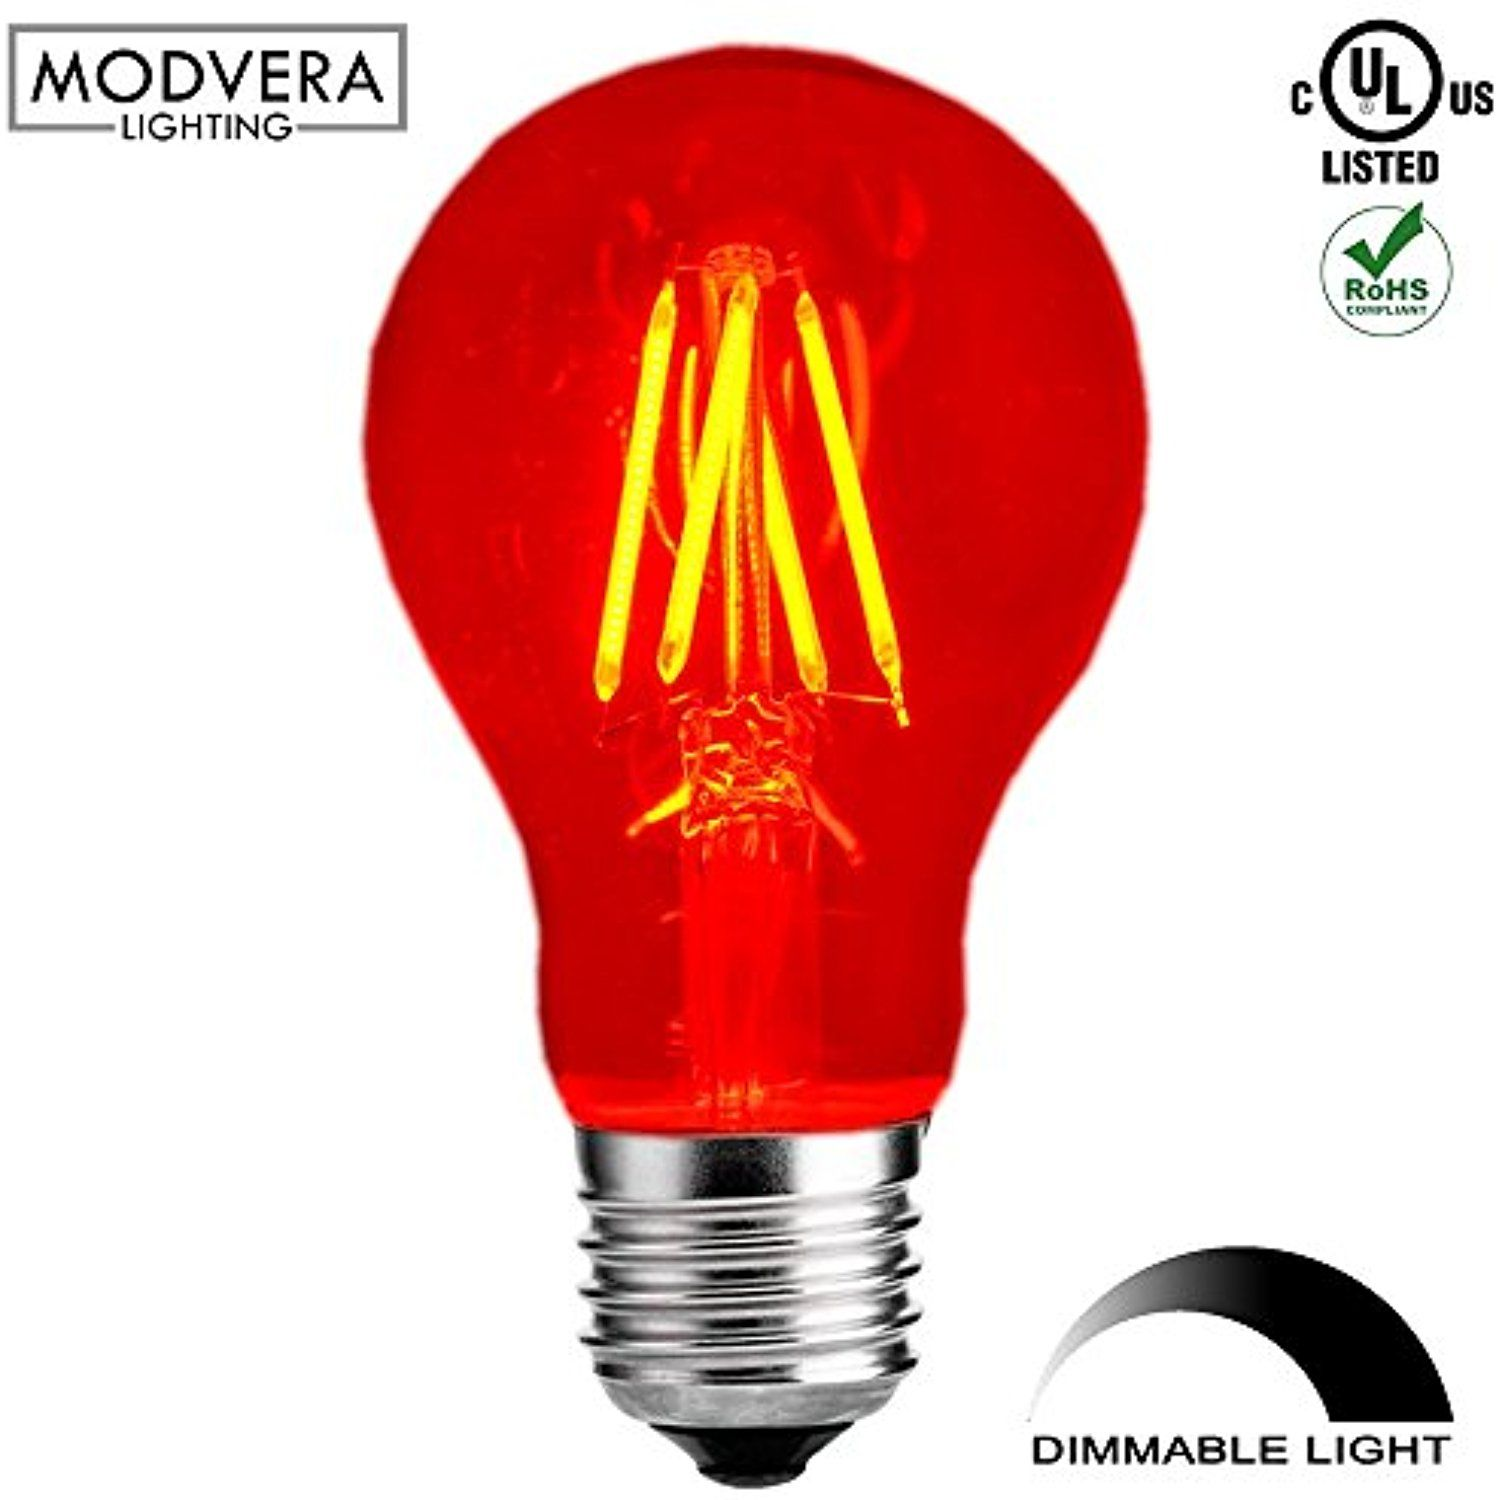 Modvera Red Led Light Bulb A19 3 Watt E26 Base 15 000 Hour Lifespan Clear Glass Lights Up Red Click Image To R Red Led Lights Led Light Bulb Glass Lighting